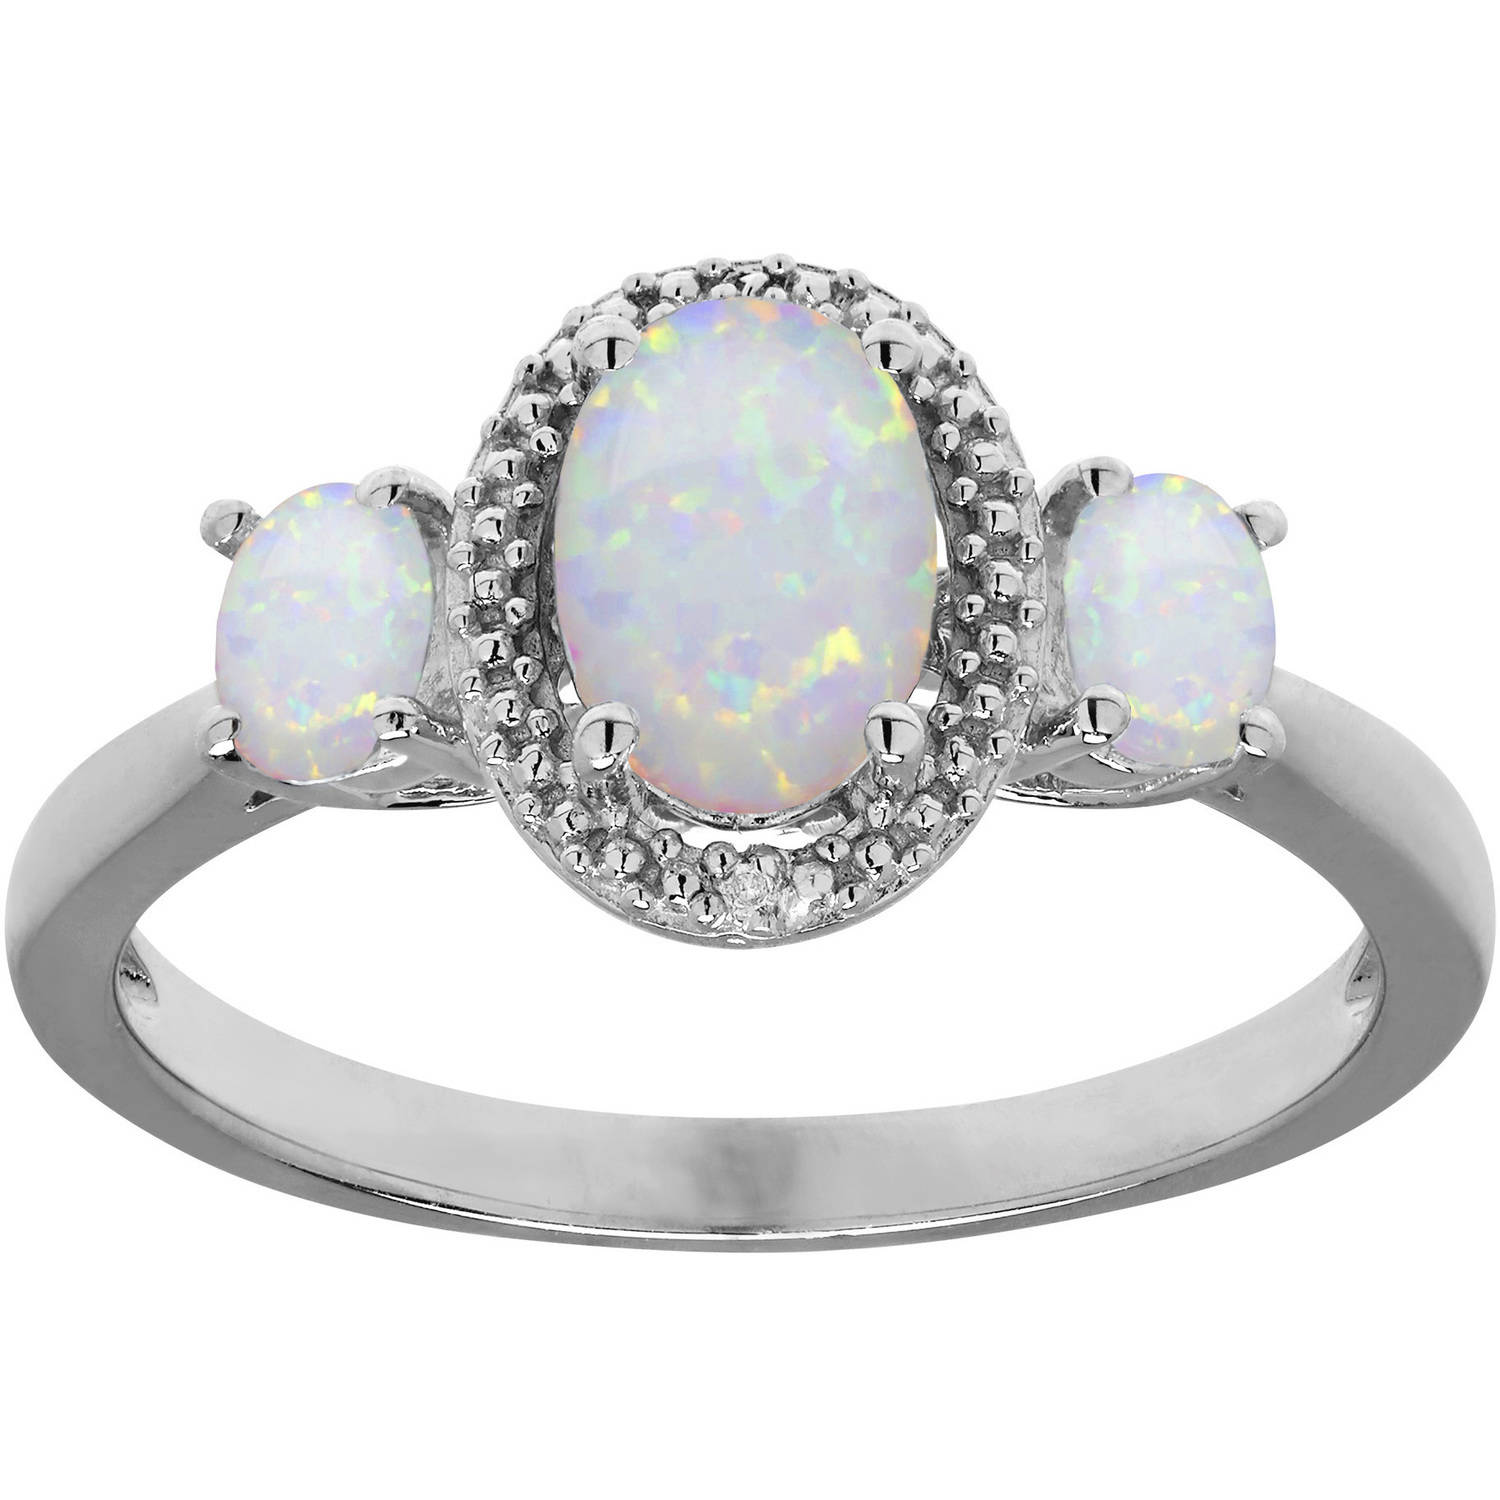 Created Opal and Diamond Accent Sterling Silver Ring, Size 7